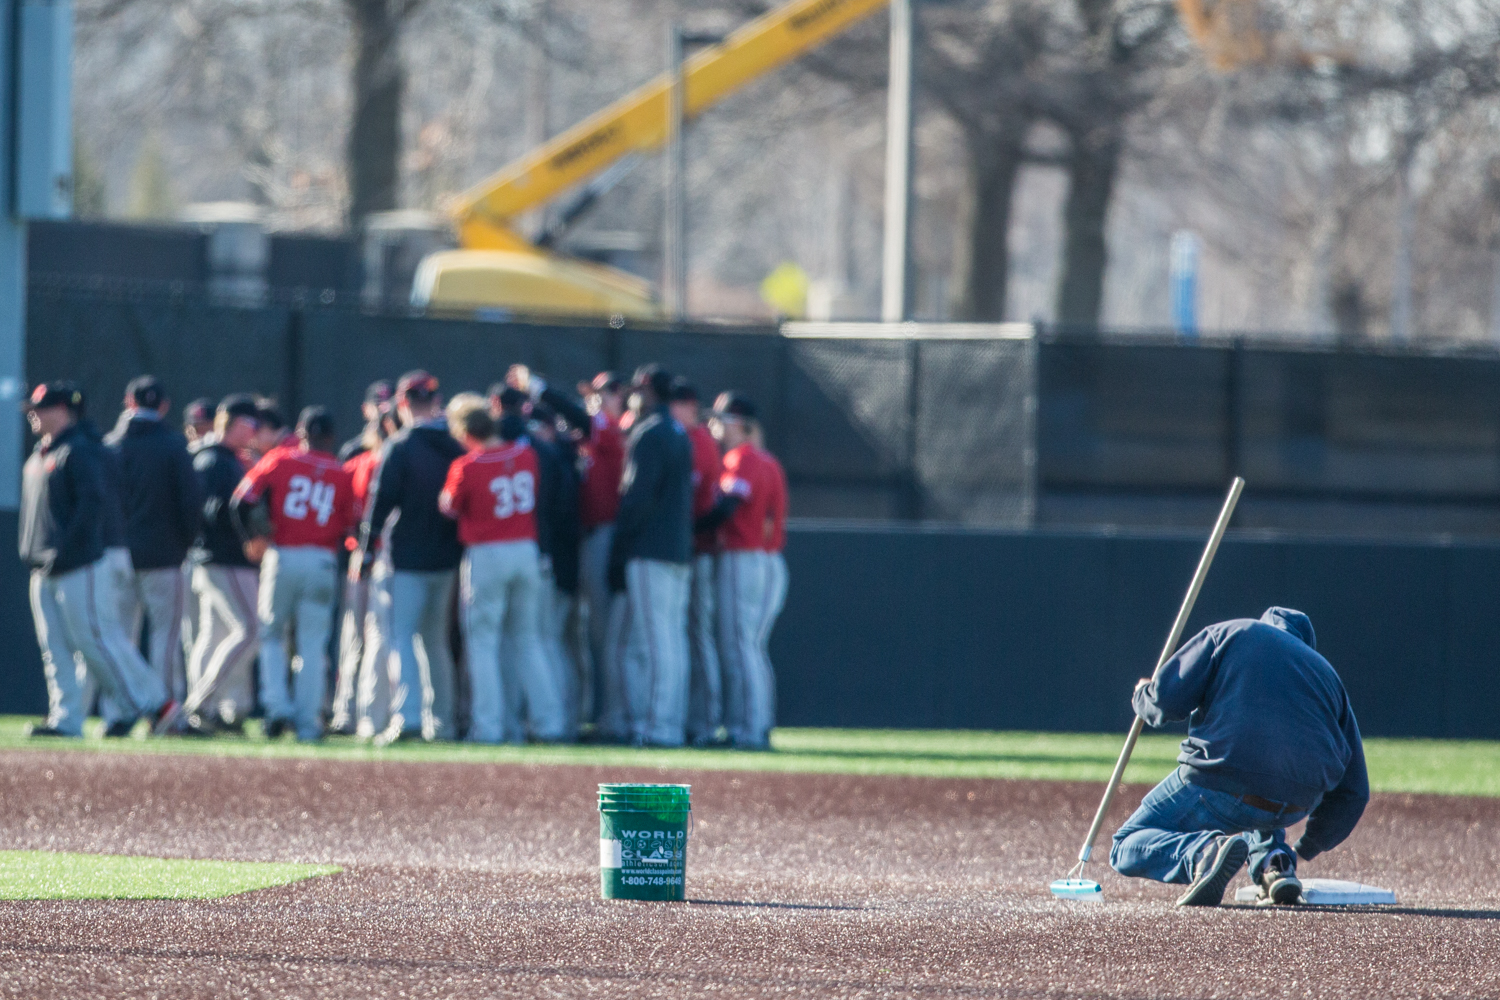 Groundskeepers+maintain+the+infield+between+games+during+a+baseball+doubleheader+between+Iowa+and+Cal-State+Northridge+at+Duane+Banks+Field+on+Sunday%2C+March+17%2C+2019.